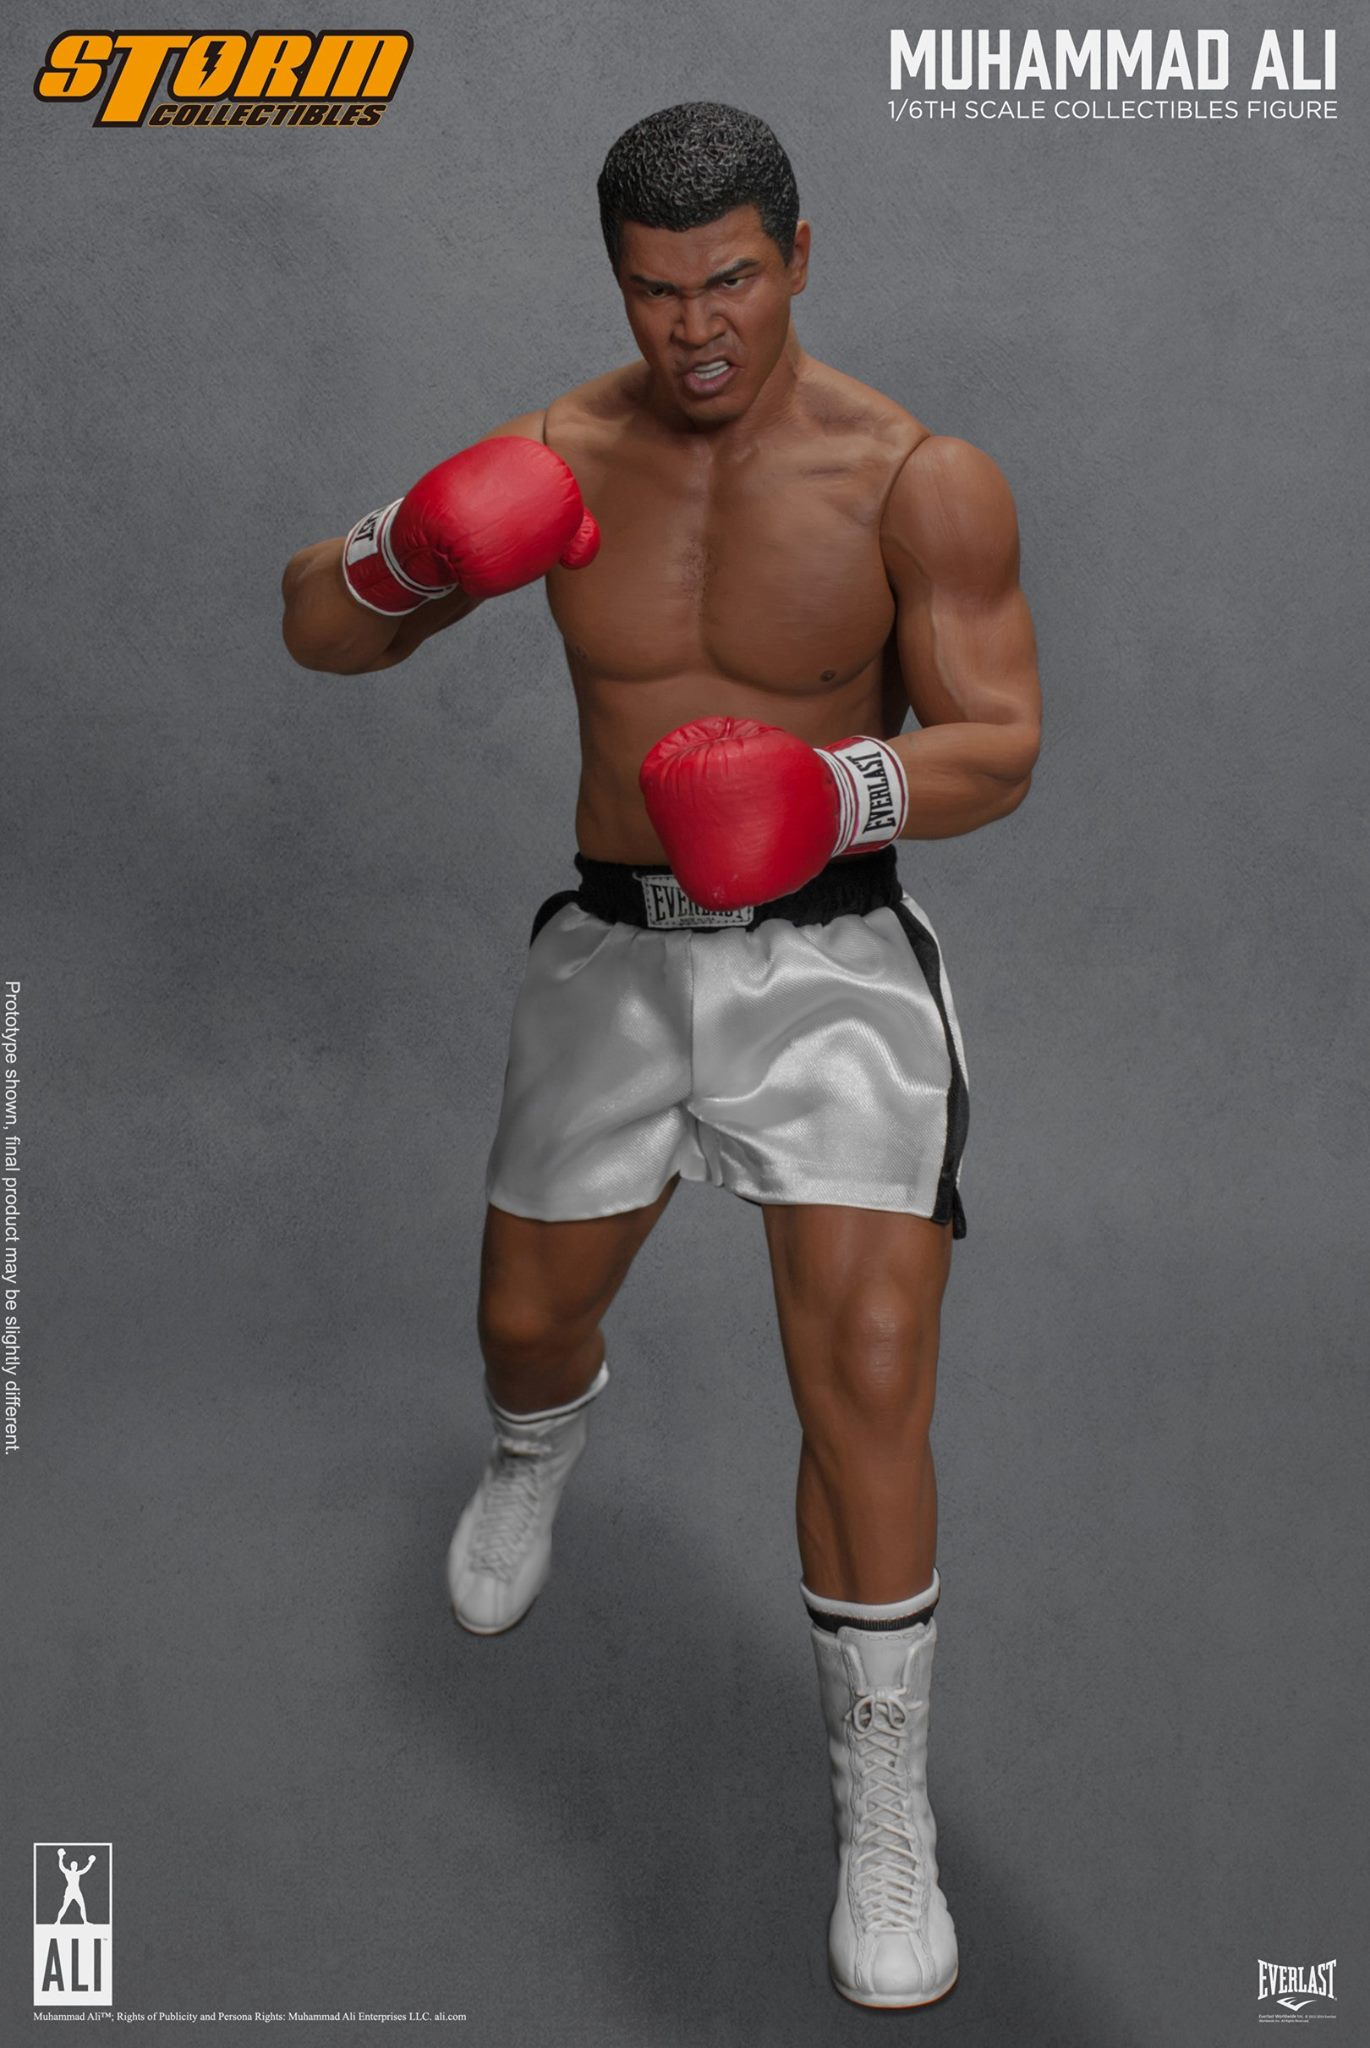 Preview Storm Collectibles 16 Scale Muhammad Ali